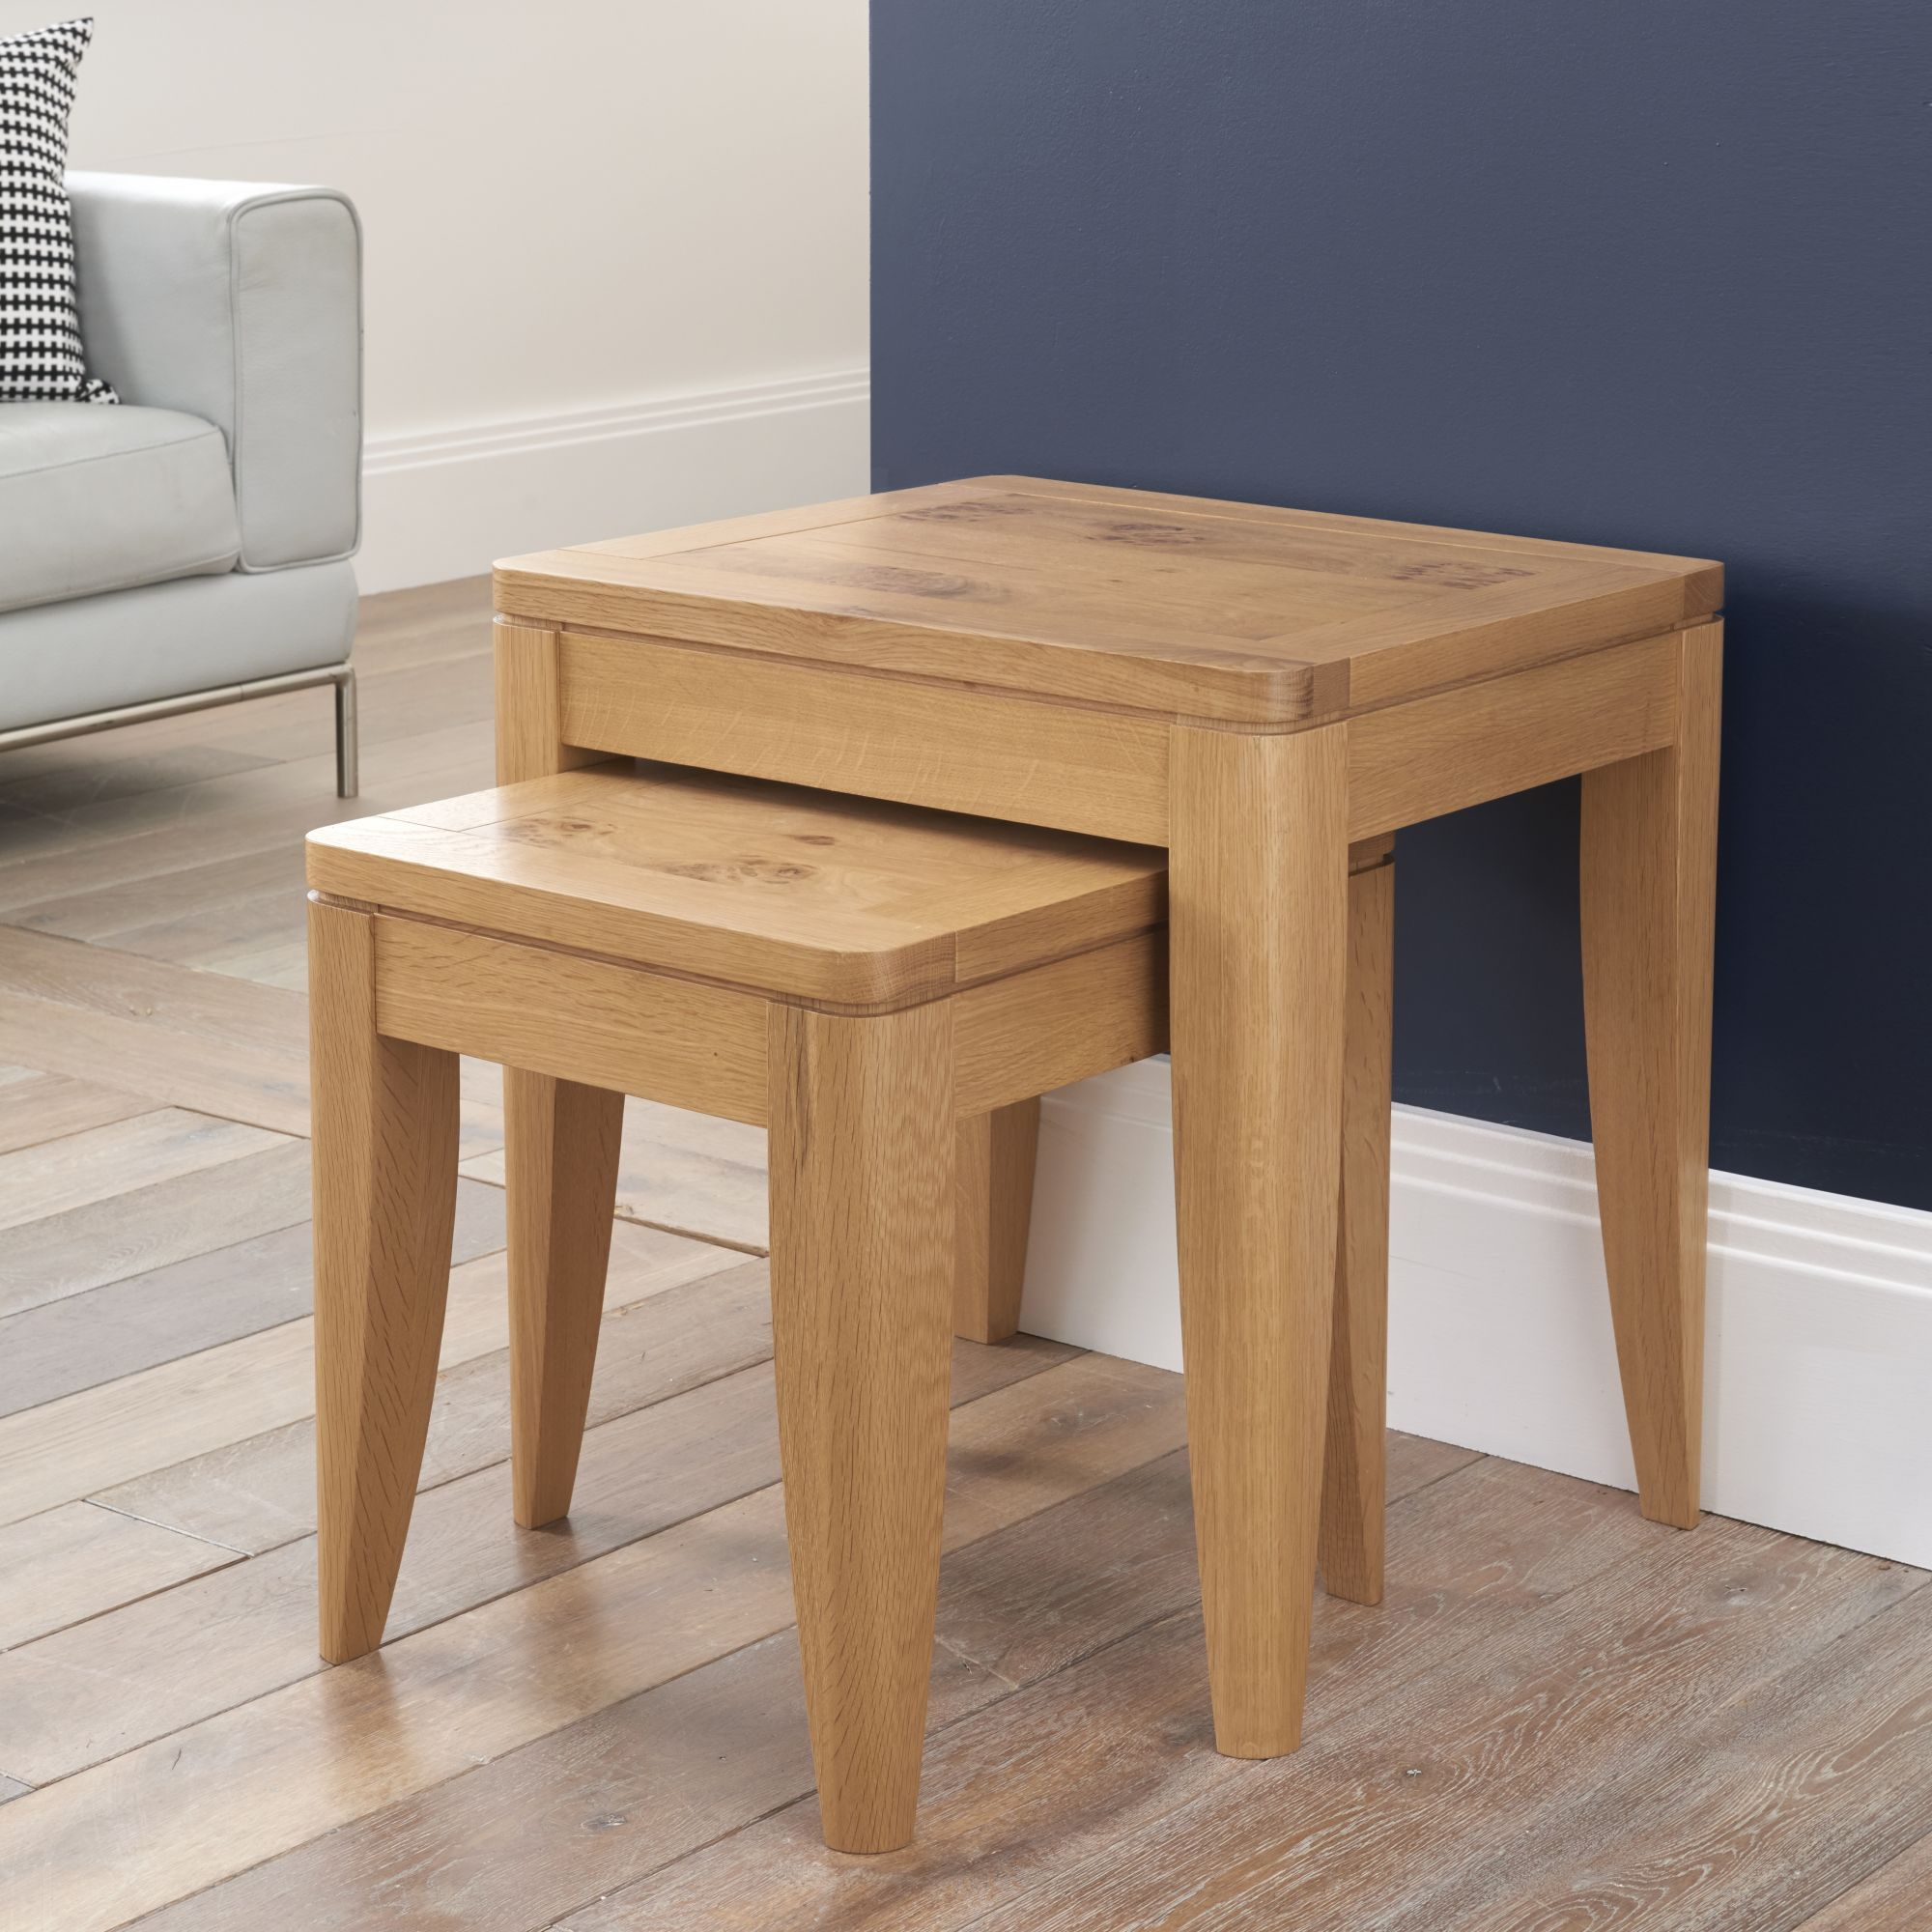 Salerno Nest of Tables